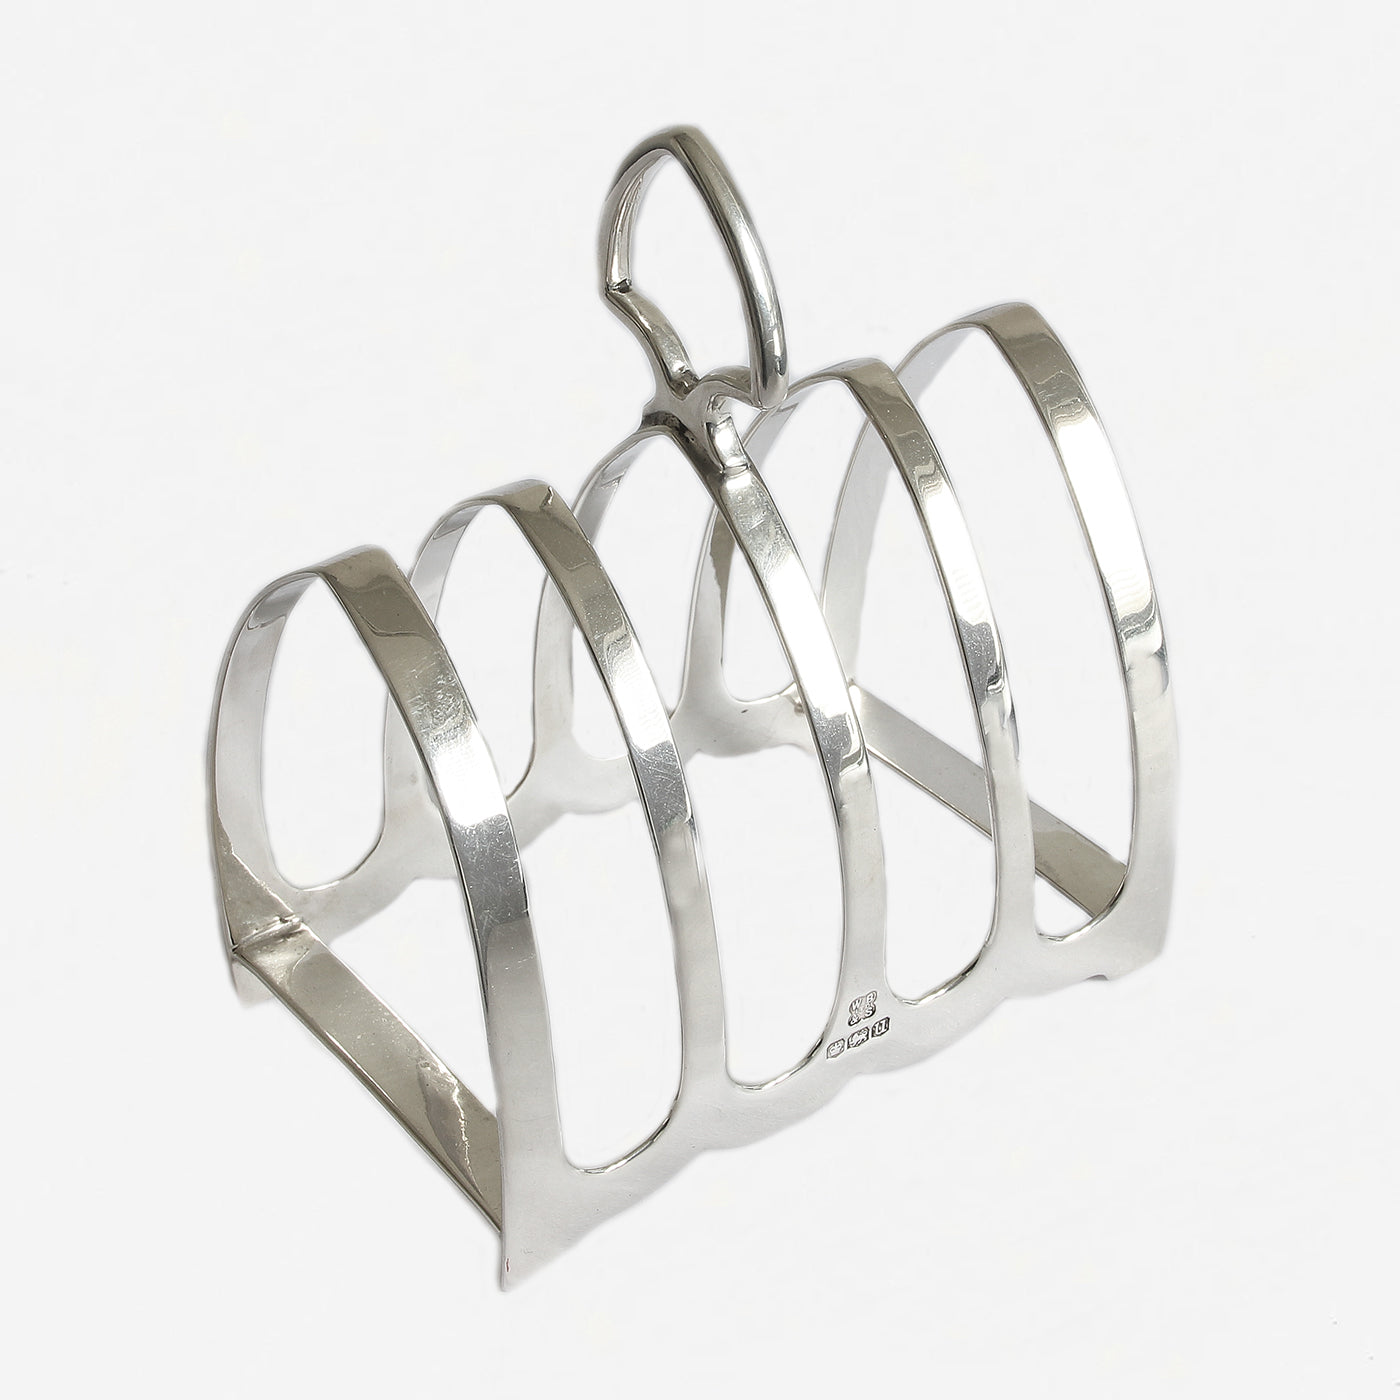 a silver toast rack with 5 arched bars Sheffield 1934